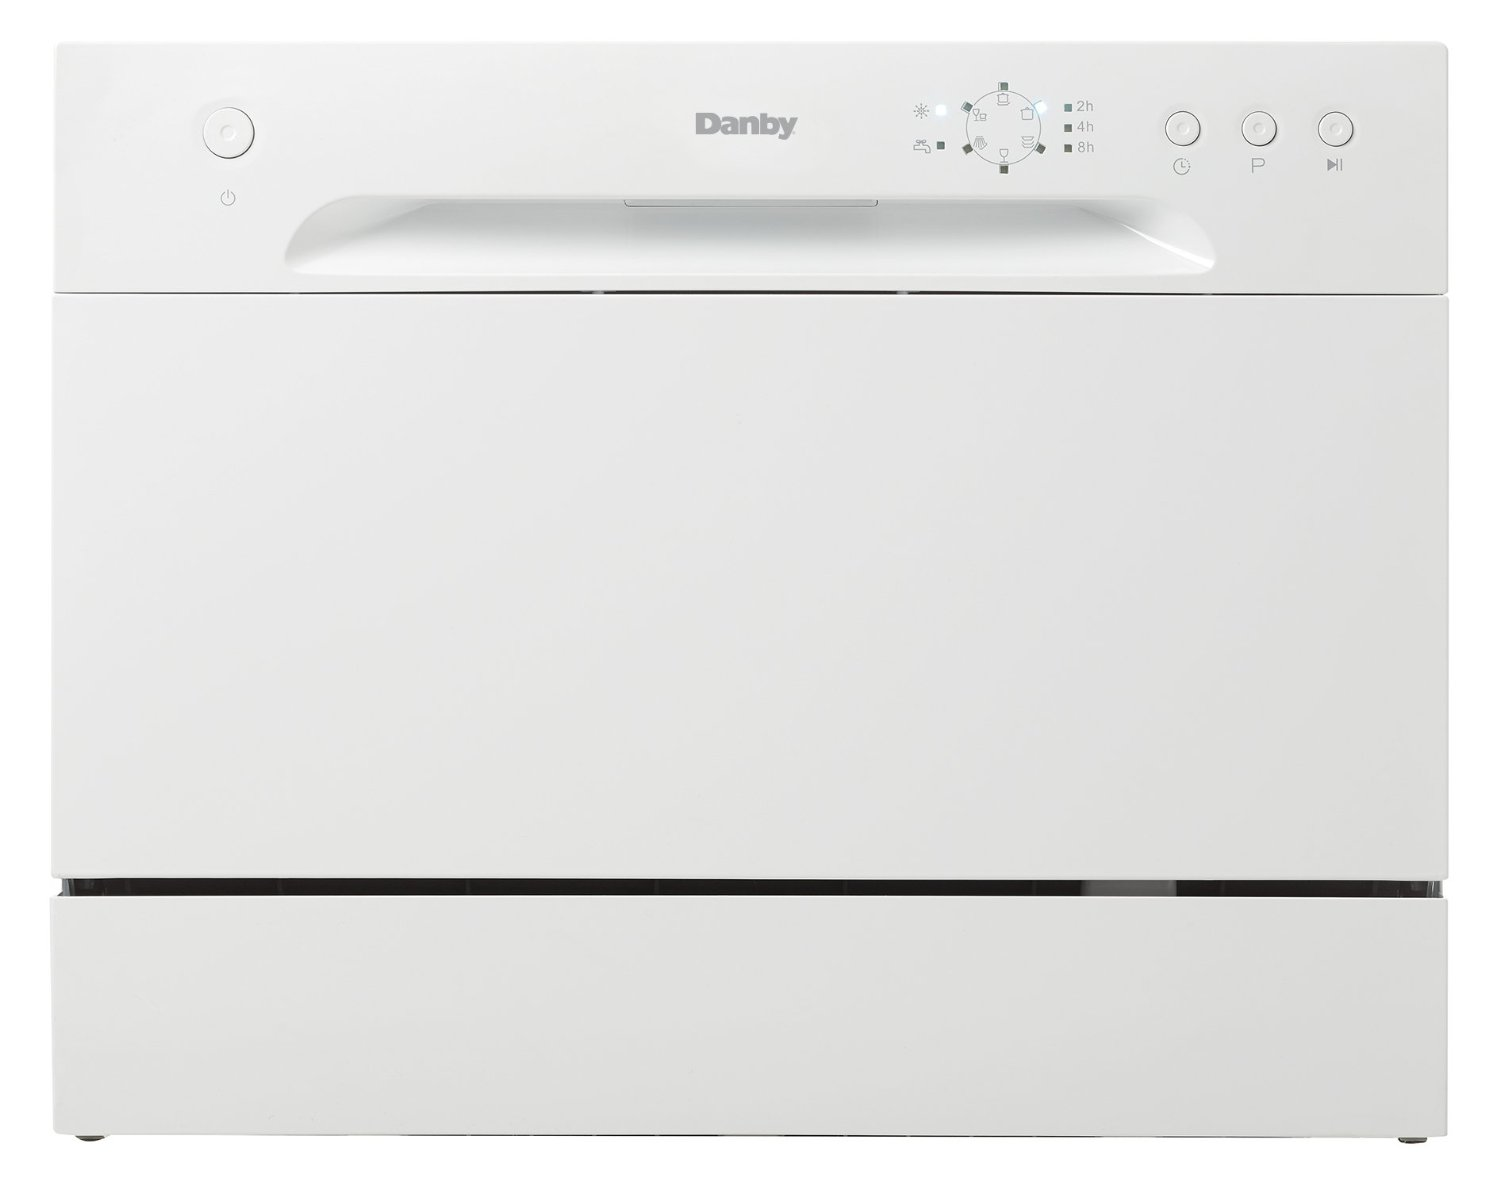 Danby DDW621WBB Countertop Dishwasher